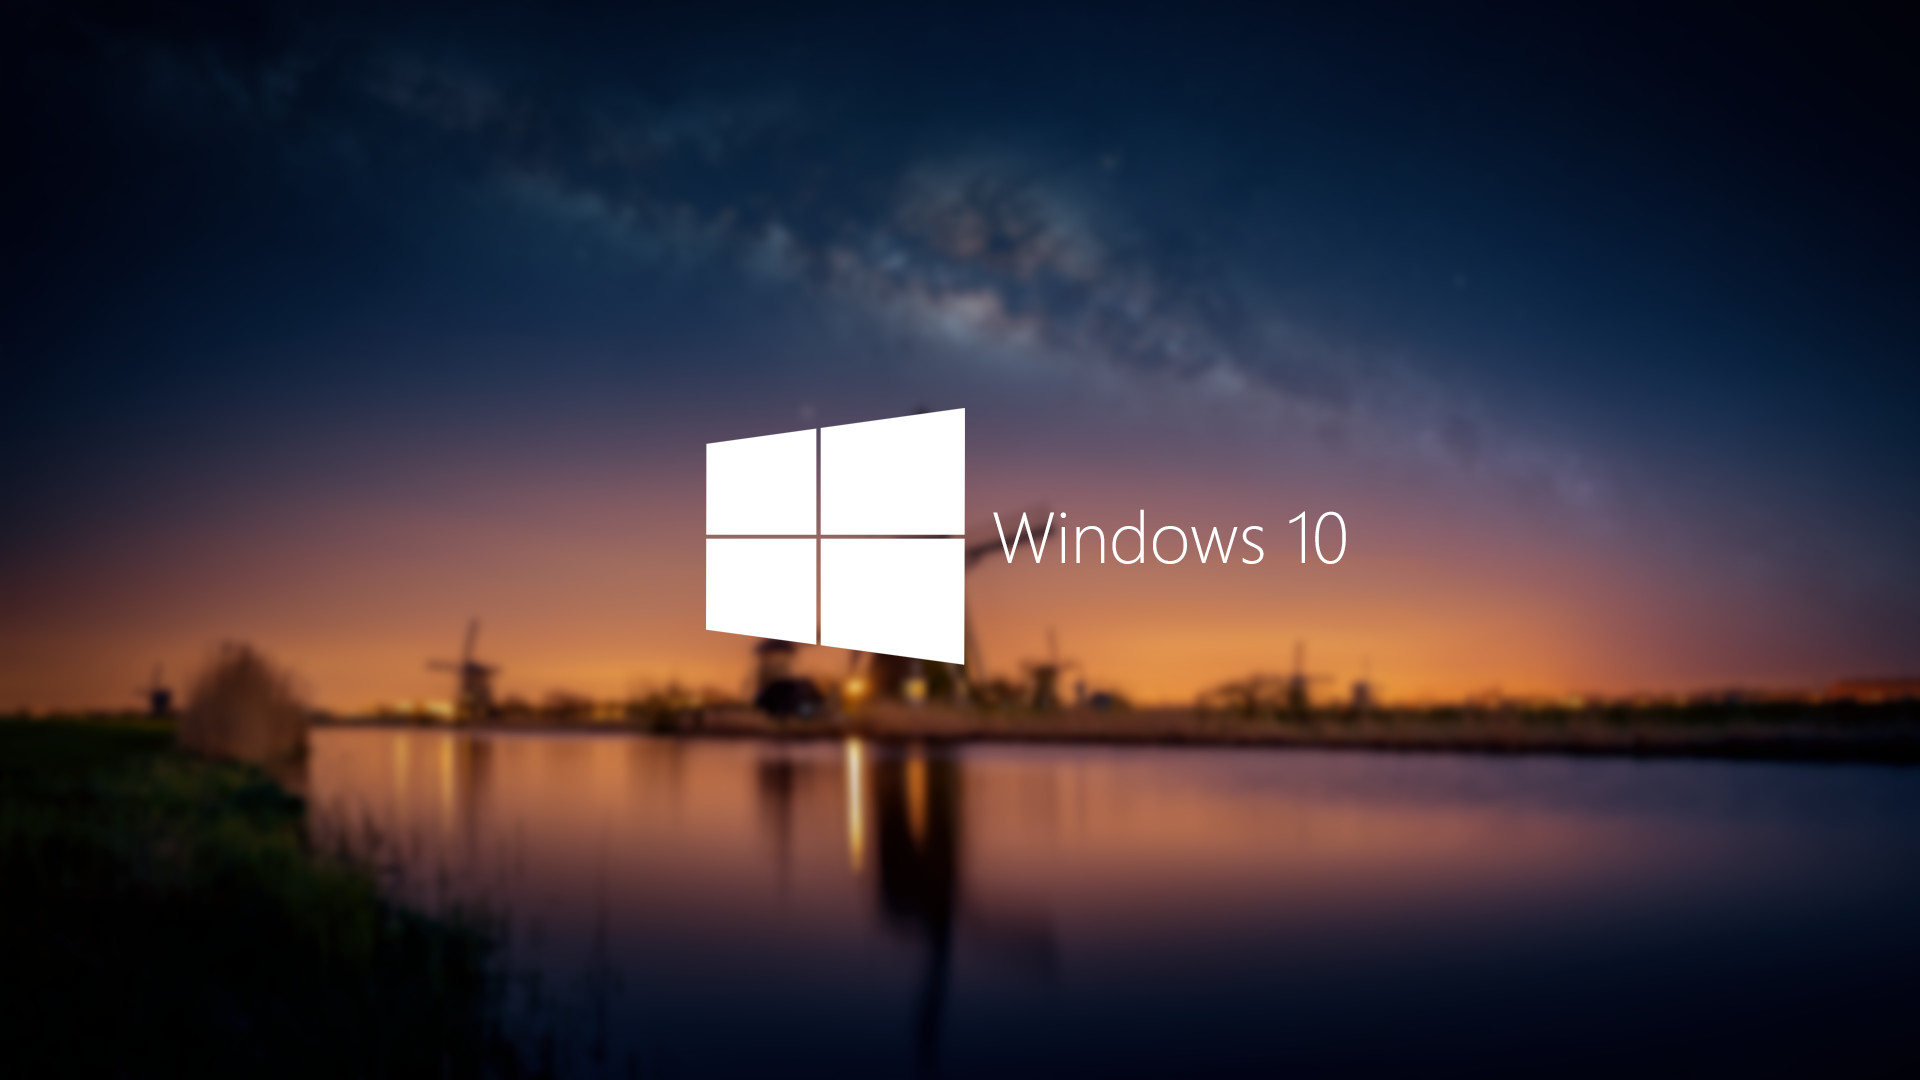 Cool Windows 10 Hd Wallpapers 88 Images